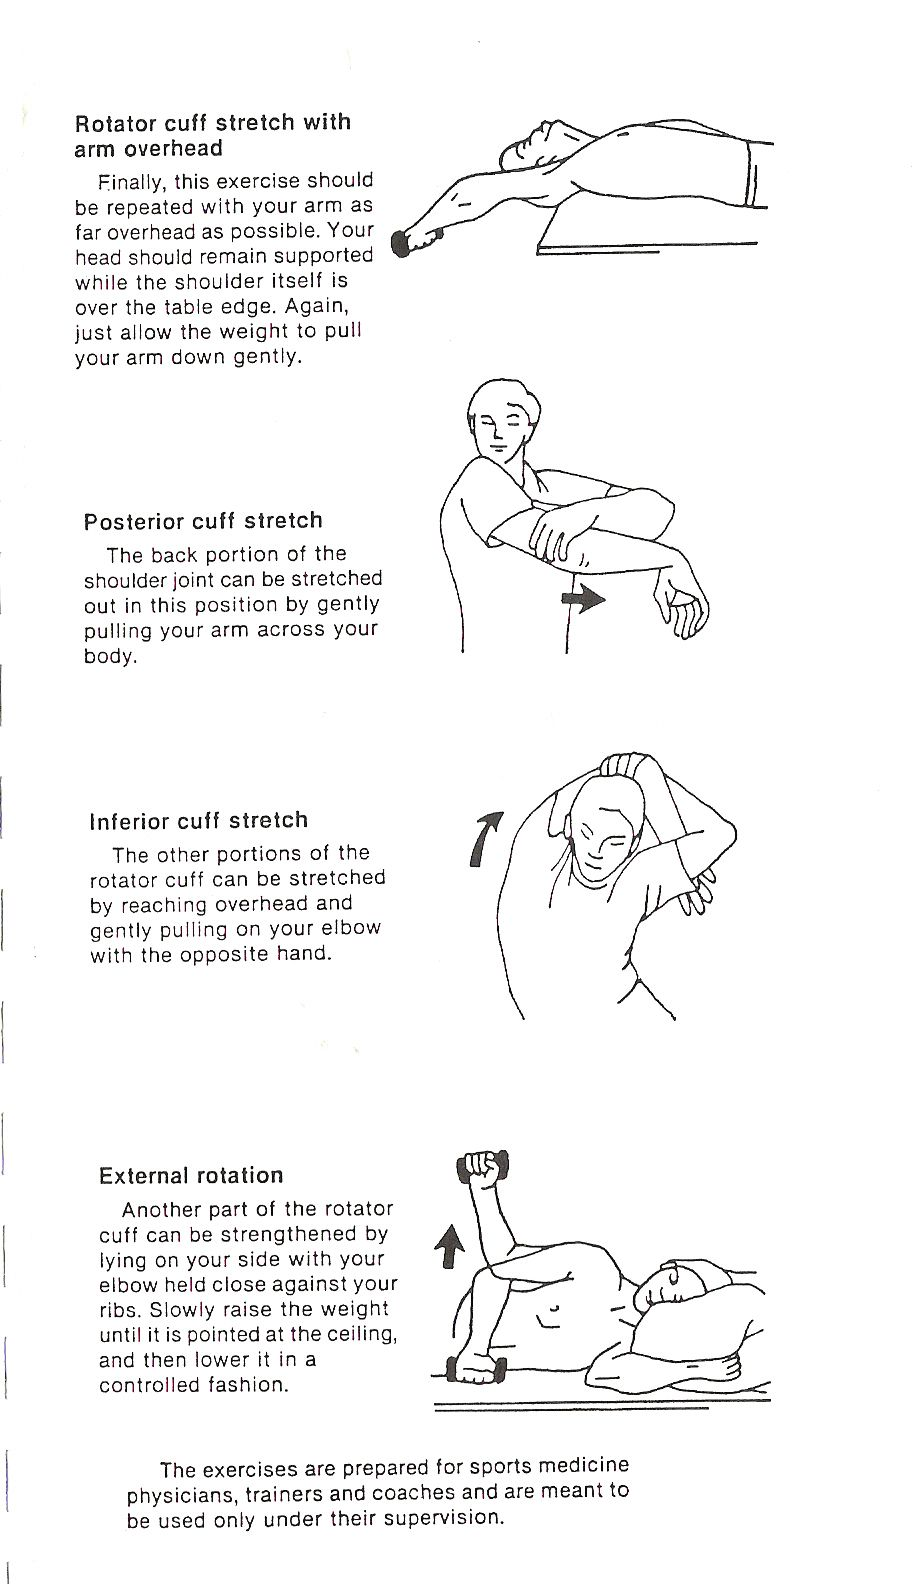 Shoulder And Arm Exercises For Baseball Players Baseball Workouts Baseball Players Baseball Pitcher